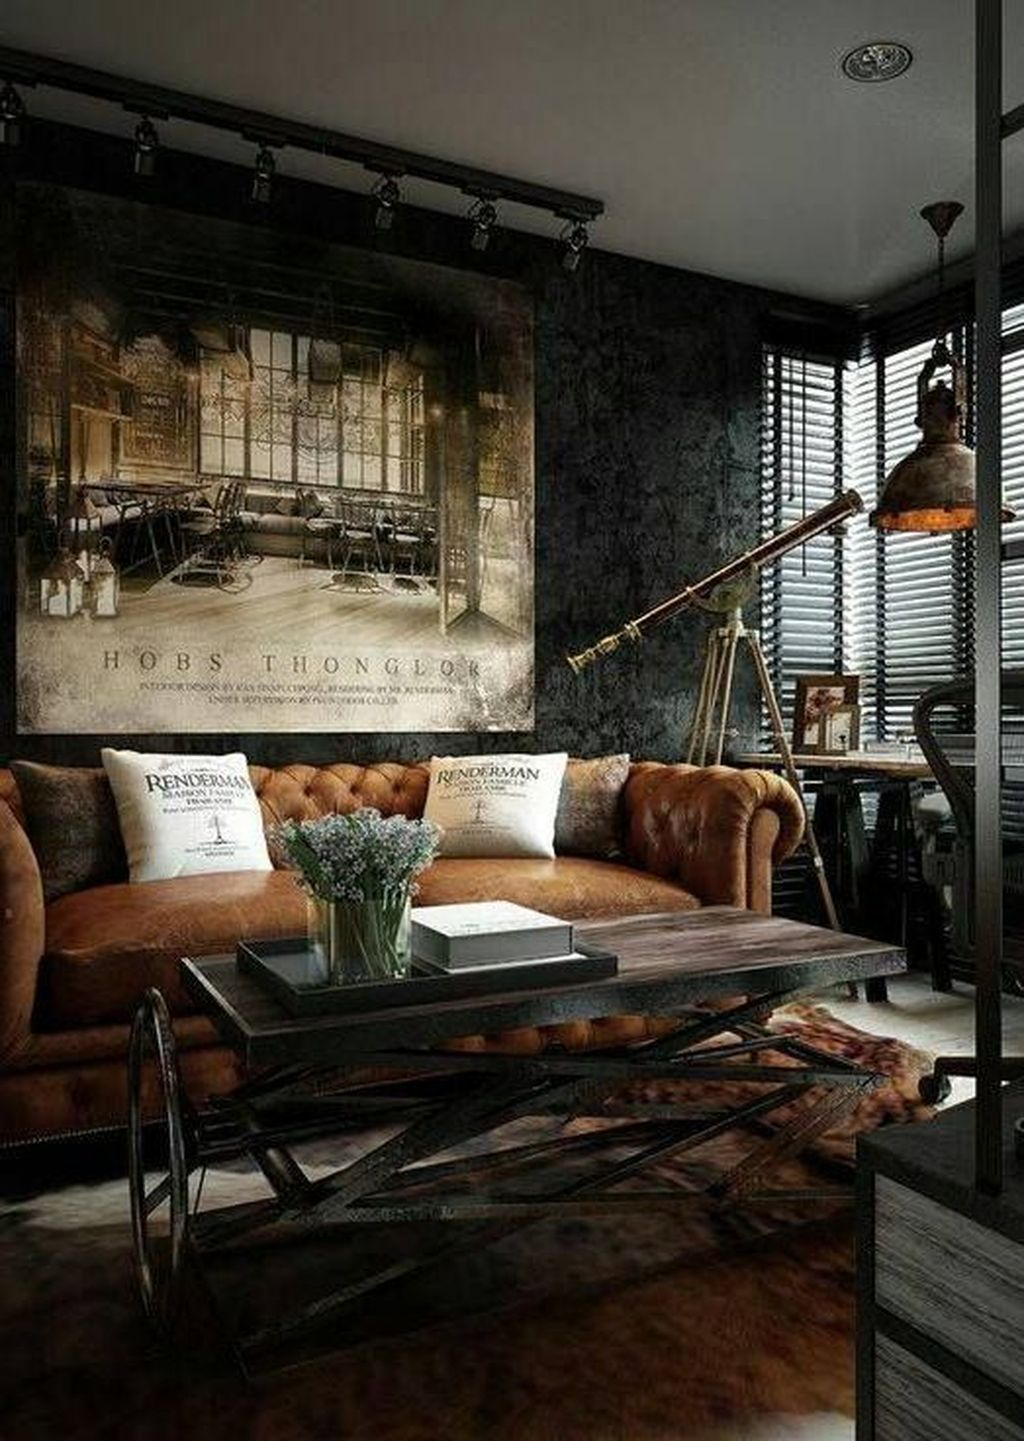 36 Creative Steampunk Room Design Ideas To Try Asap Industrial Living Room Design Small Apartment Interior Apartment Interior Design #steampunk #living #room #decor